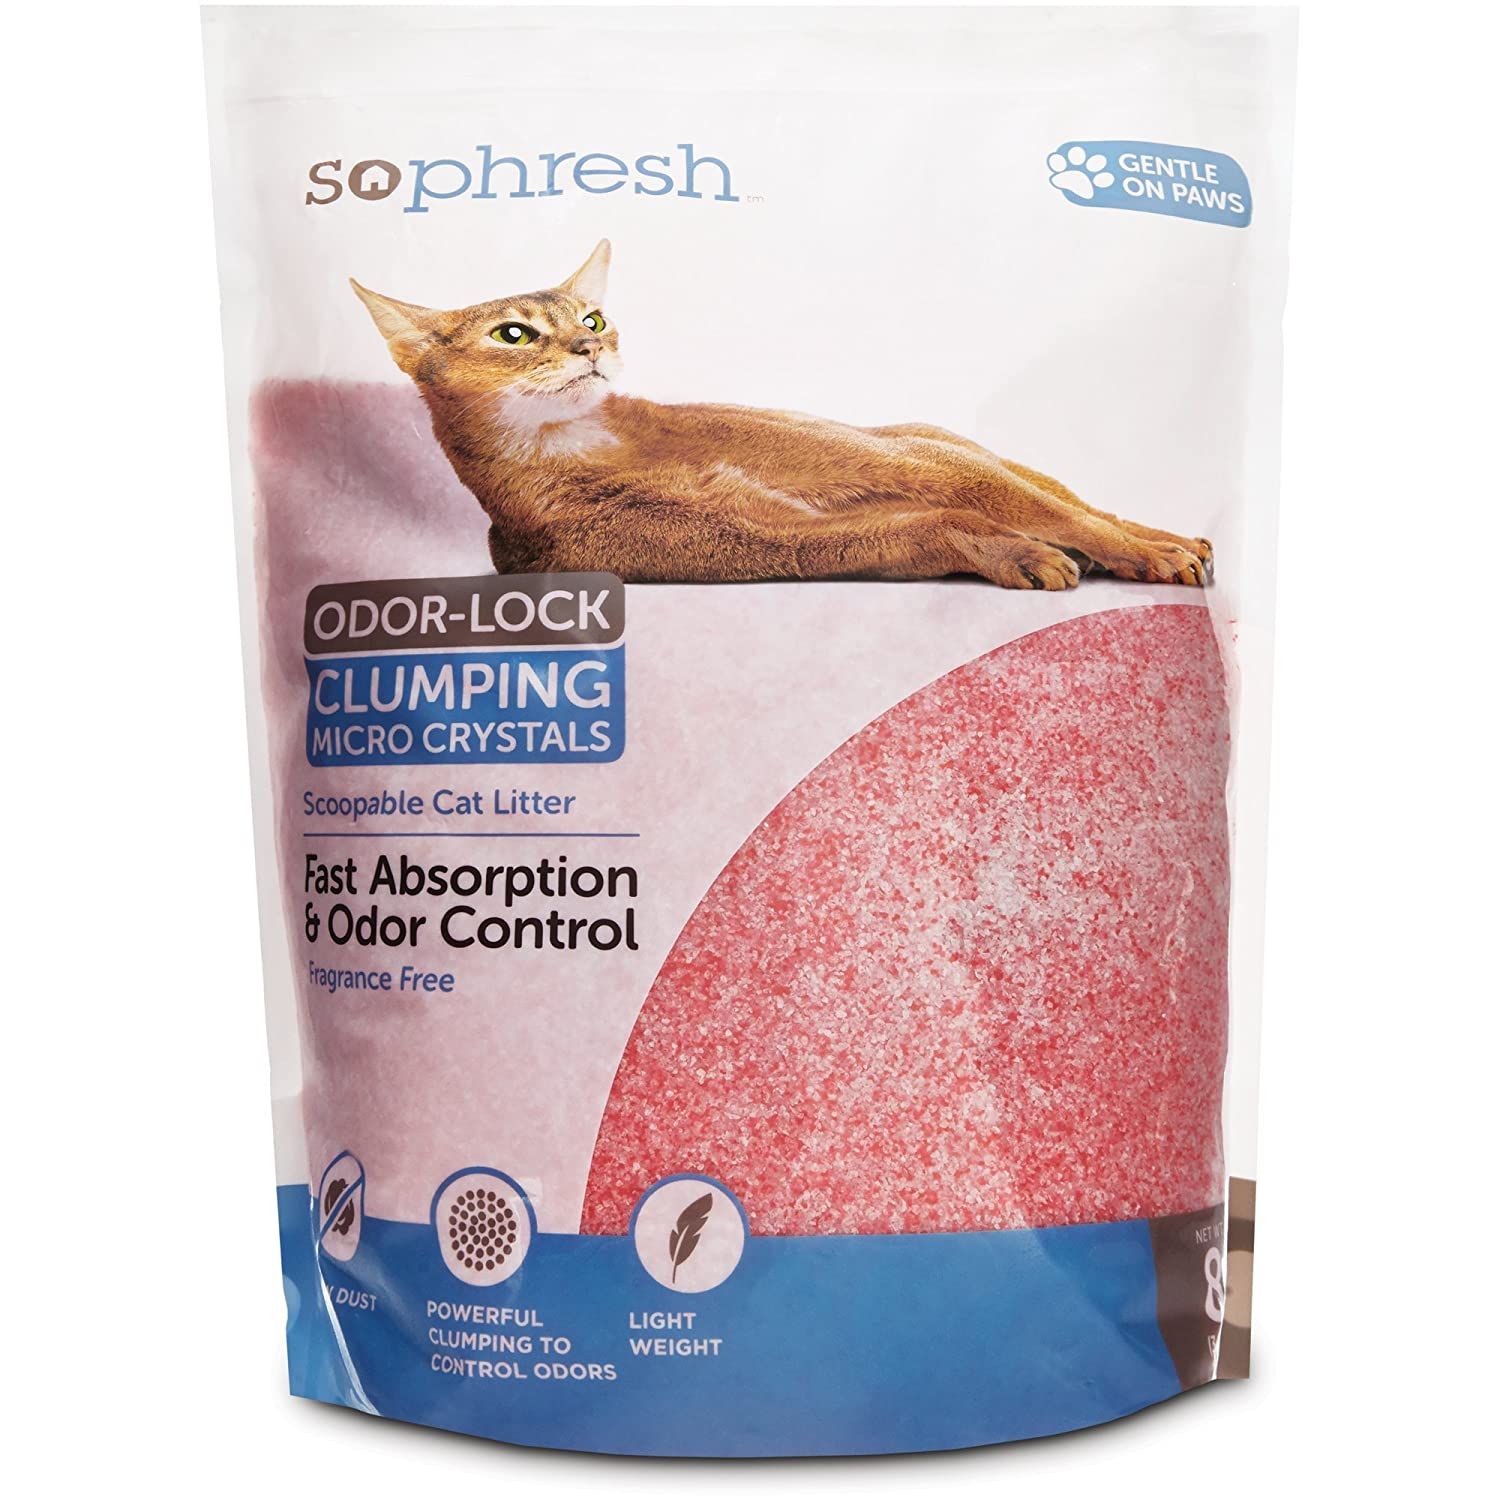 SO PHRESH Scoopable Odor-Lock Clumping Micro Crystal Cat Litter in Pink Silica